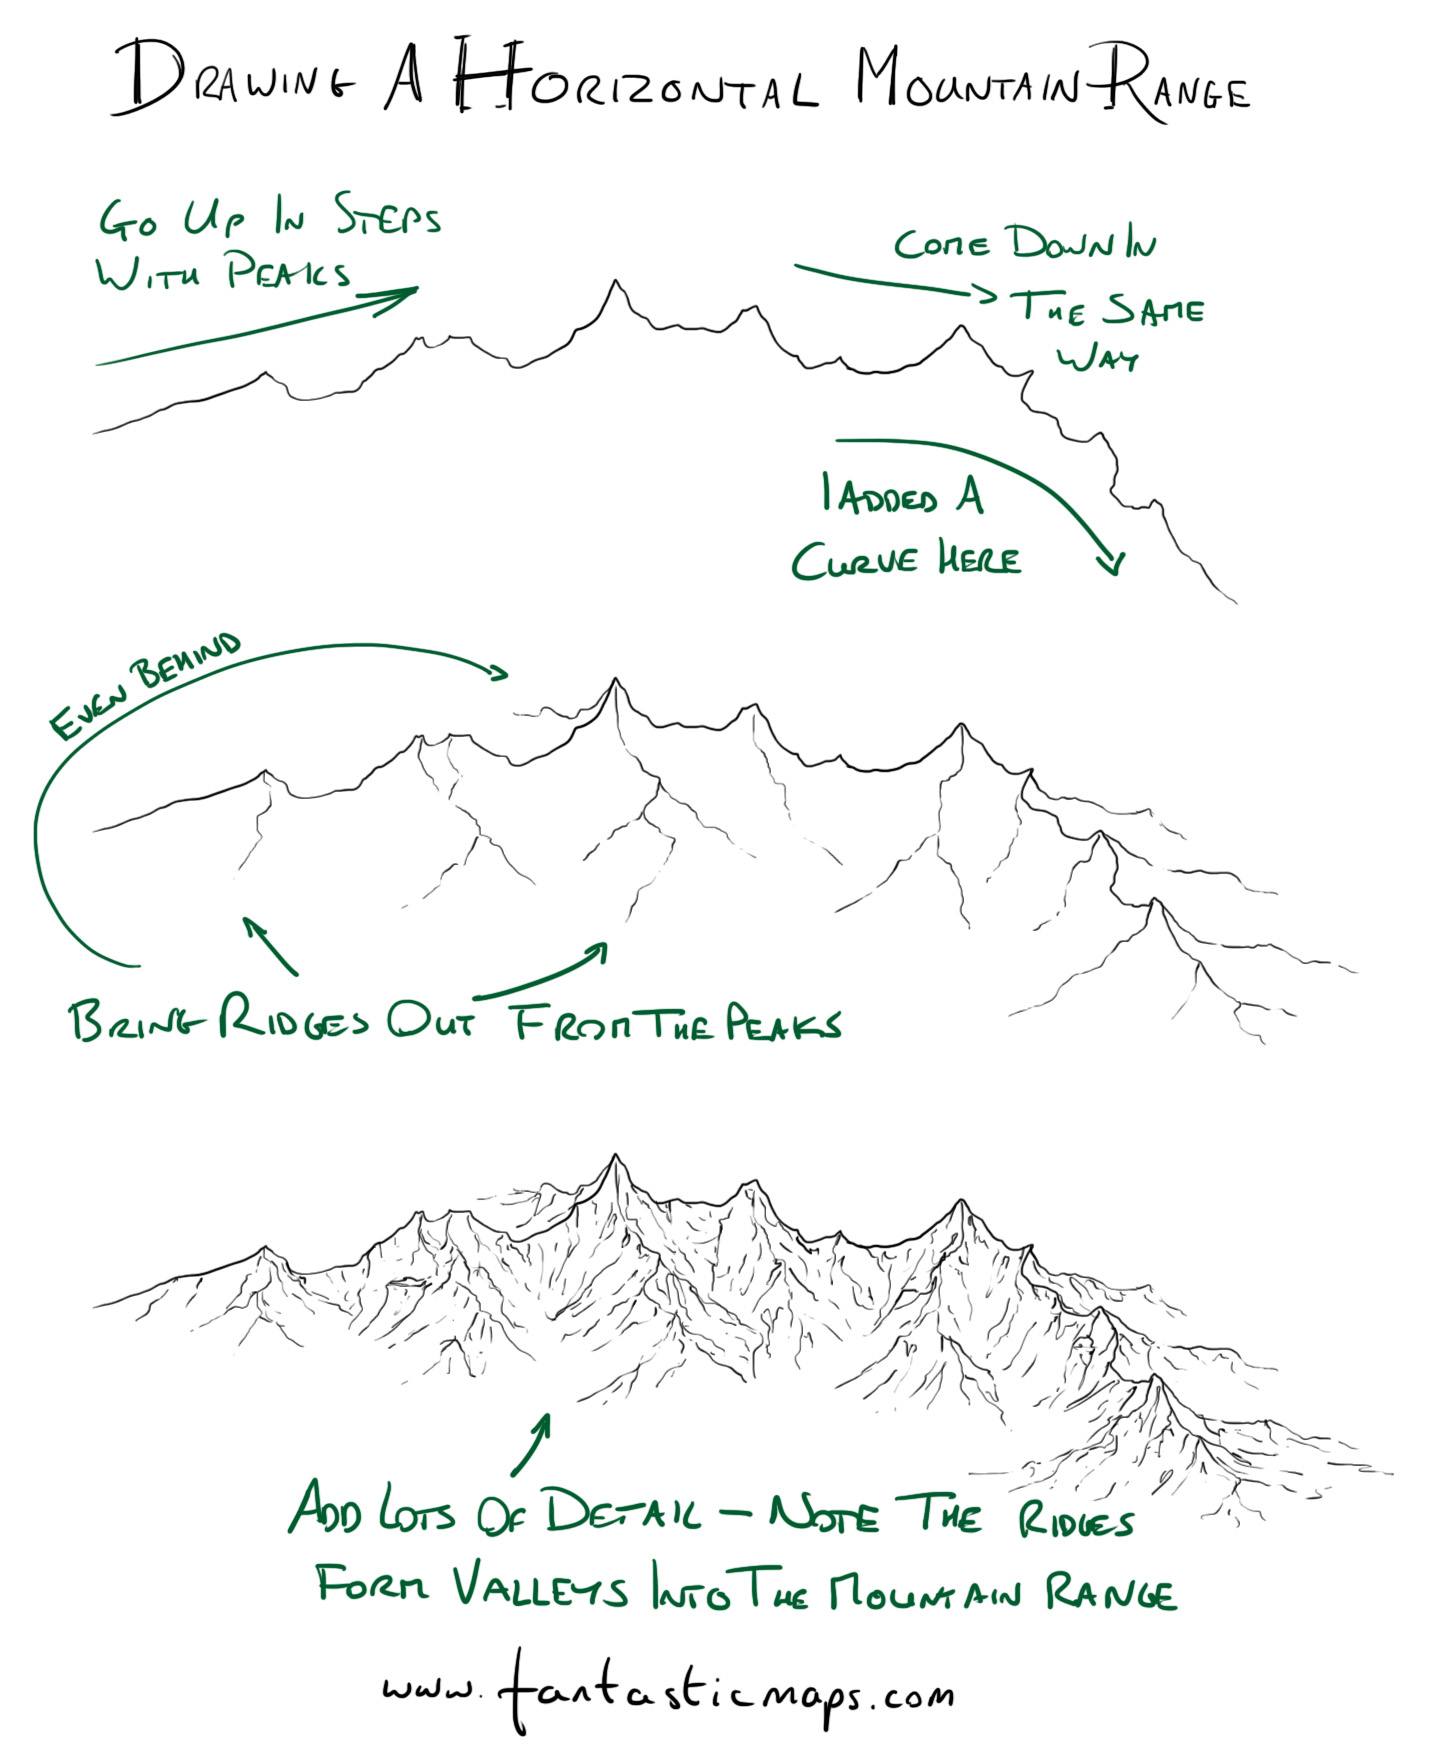 How To Draw A Horizontal Mountain Range Fantastic Maps See more ideas about mountain drawing, drawings, pen there are many ways of drawing mountains using pen and ink and i will describe few techniques here. how to draw a horizontal mountain range fantastic maps